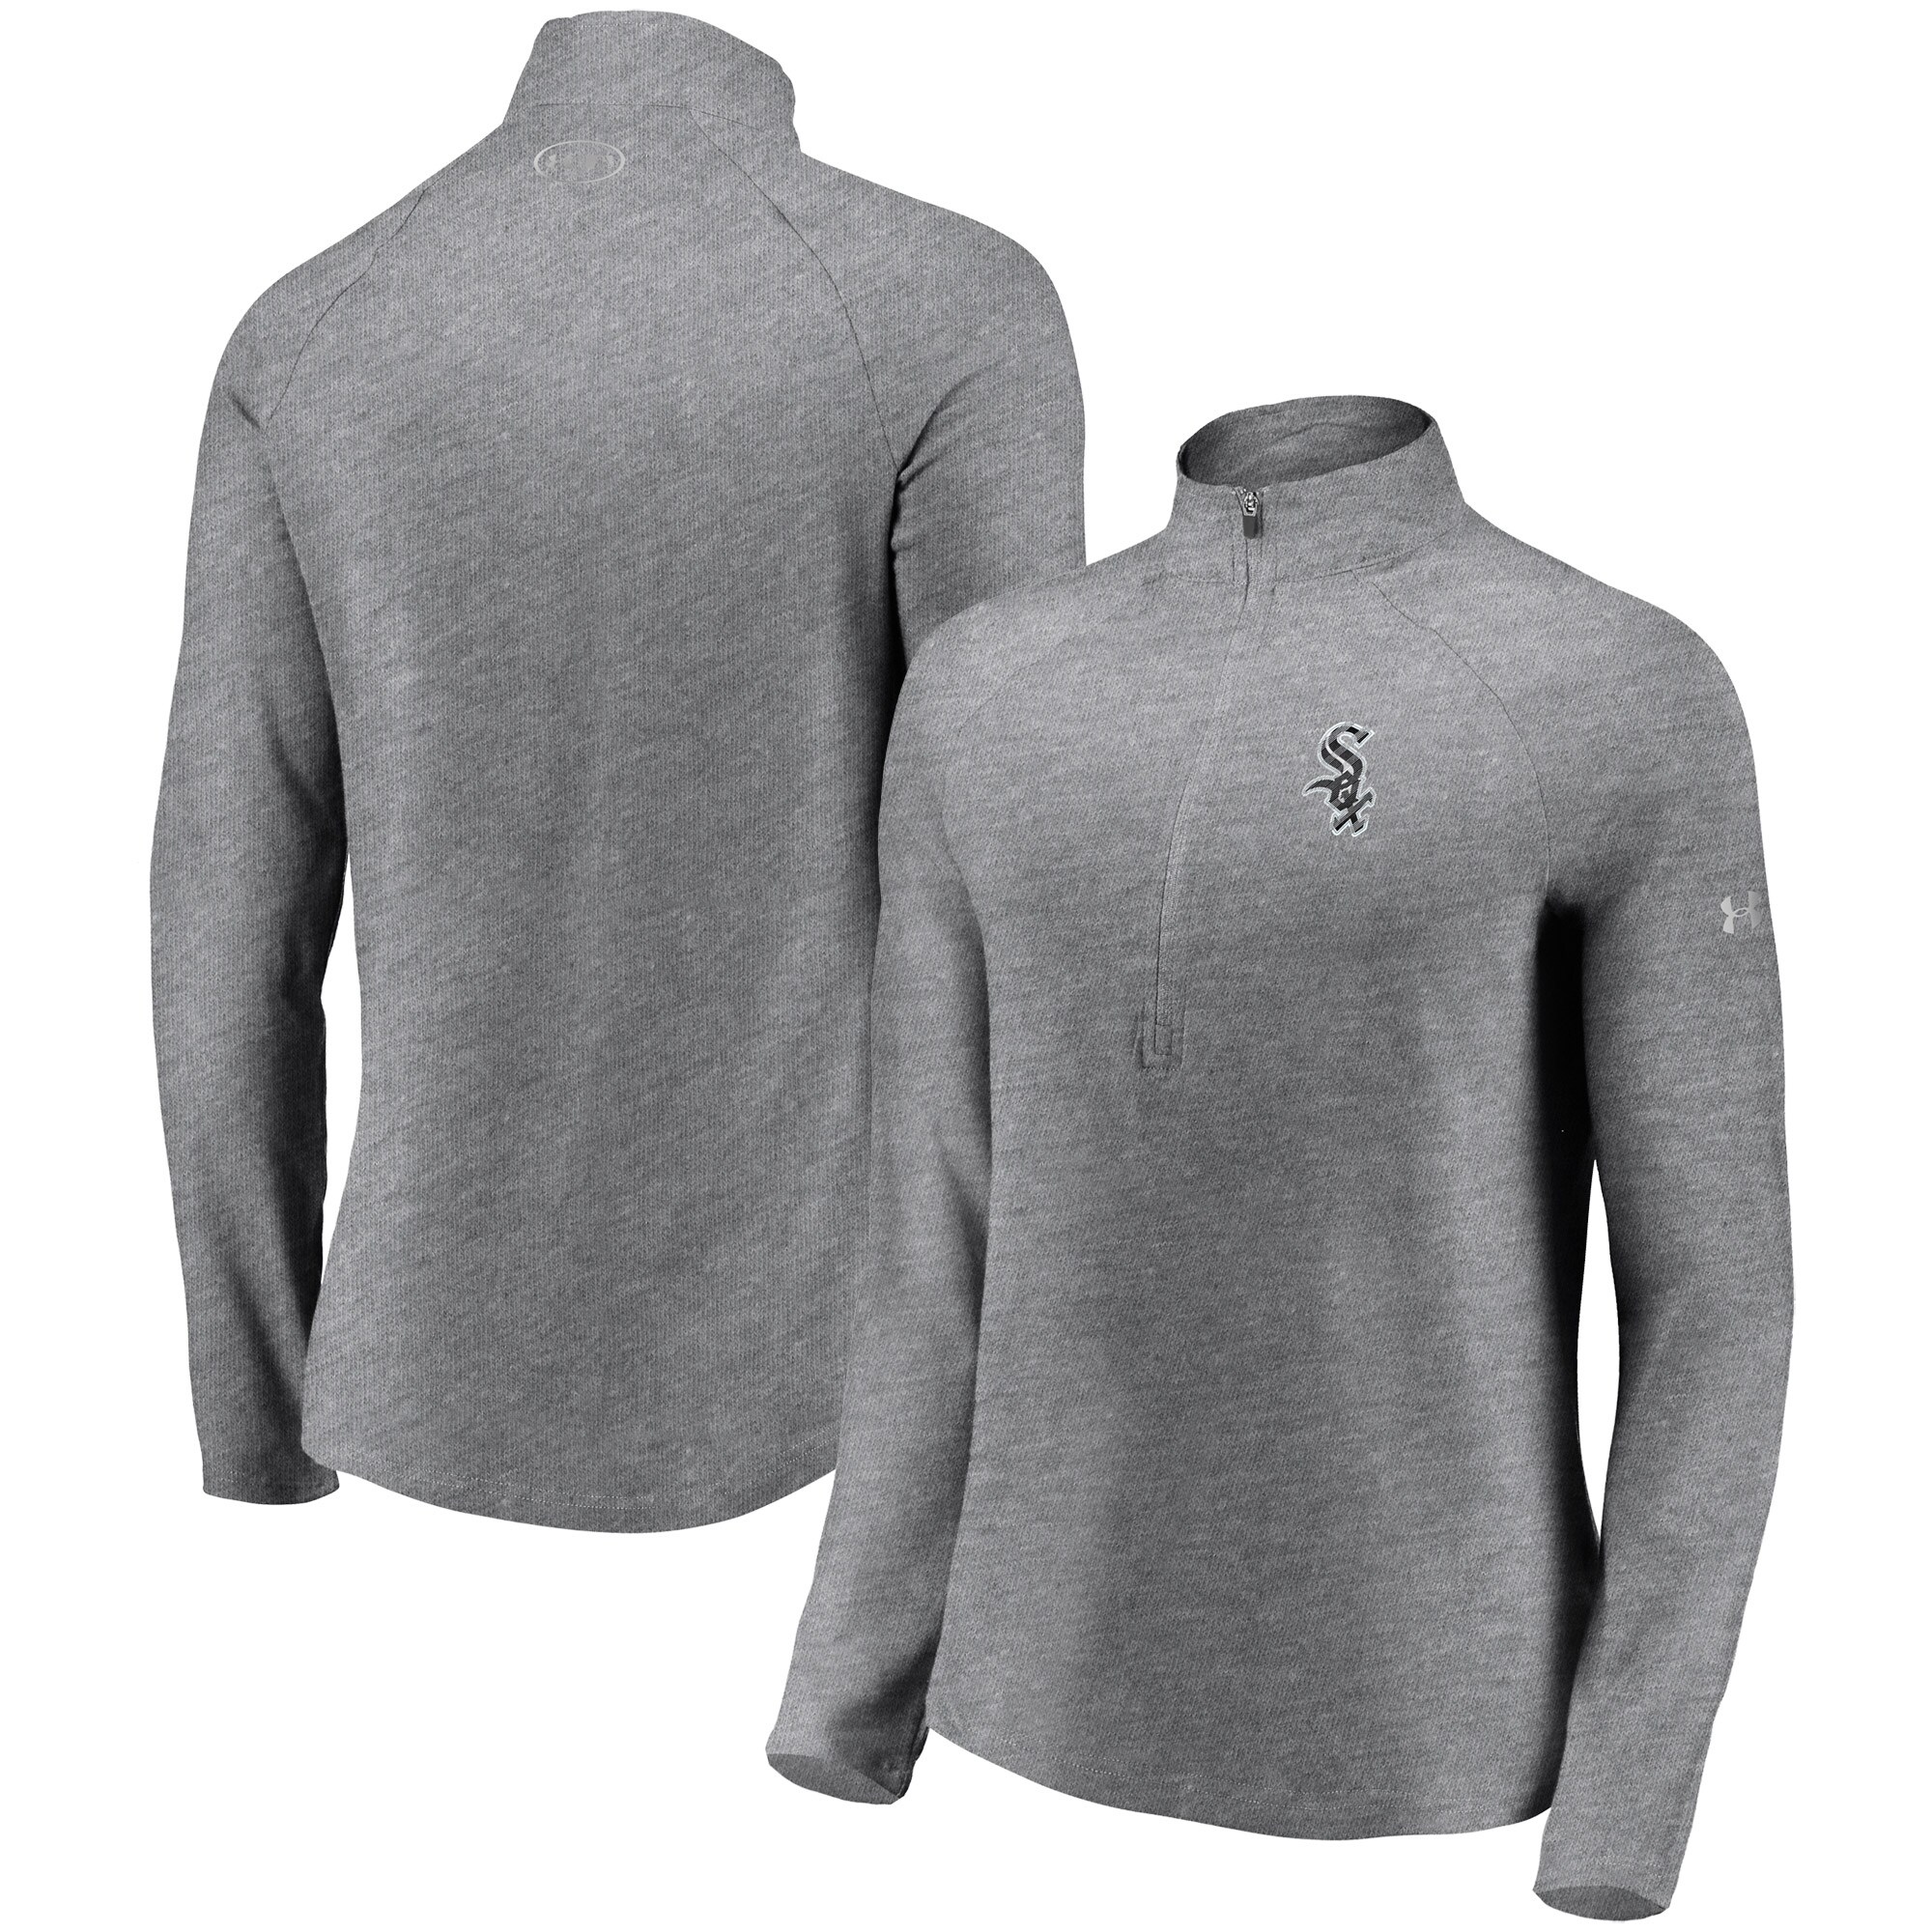 Chicago White Sox Under Armour Women's Passion Alternate Performance Tri-Blend Raglan Half-Zip Pullover Jacket - Heathered Gray